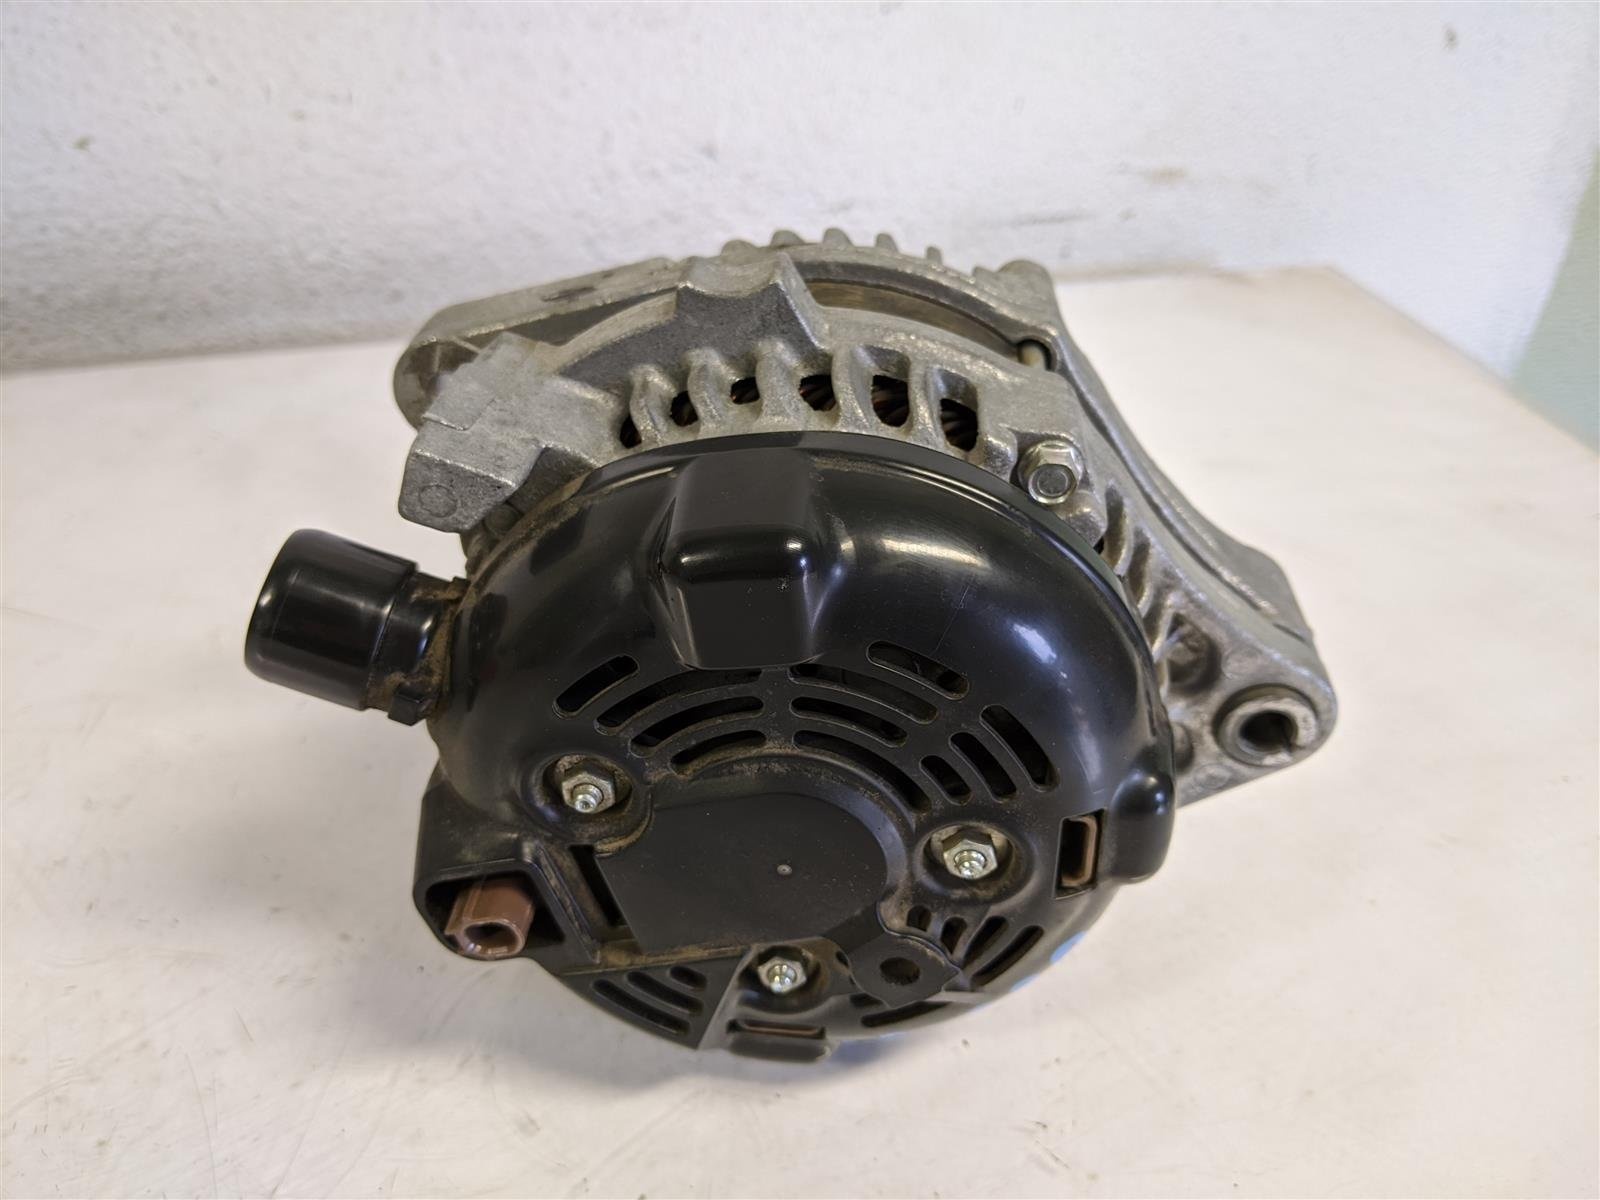 2015 Acura TLX 3.5l Alternator Replacement